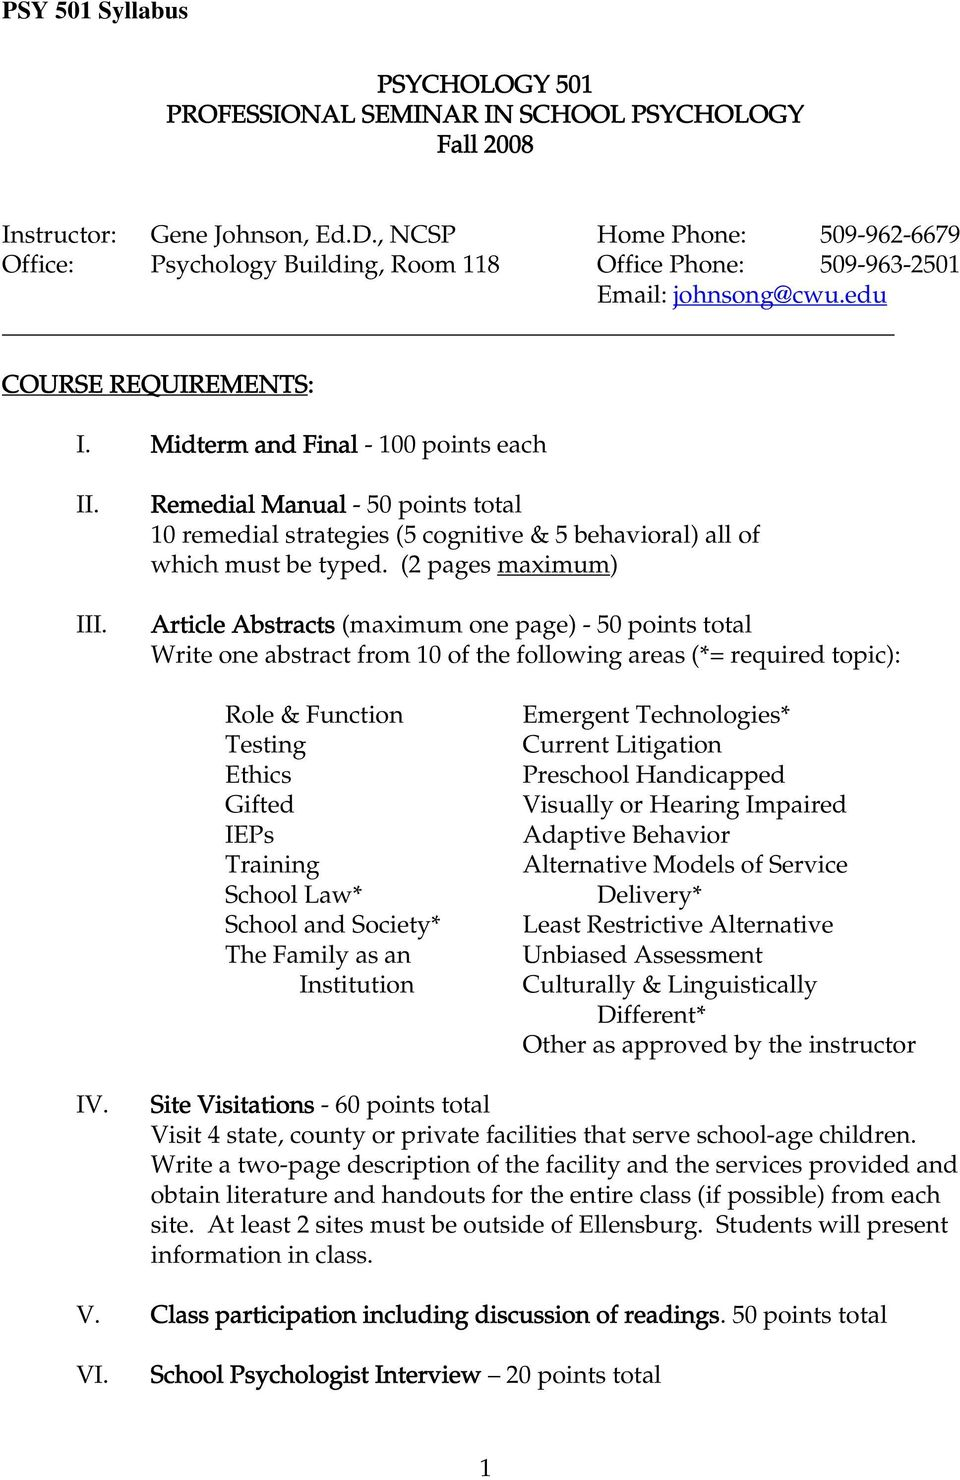 Remedial Manual - 50 points total 10 remedial strategies (5 cognitive & 5 behavioral) all of which must be typed.